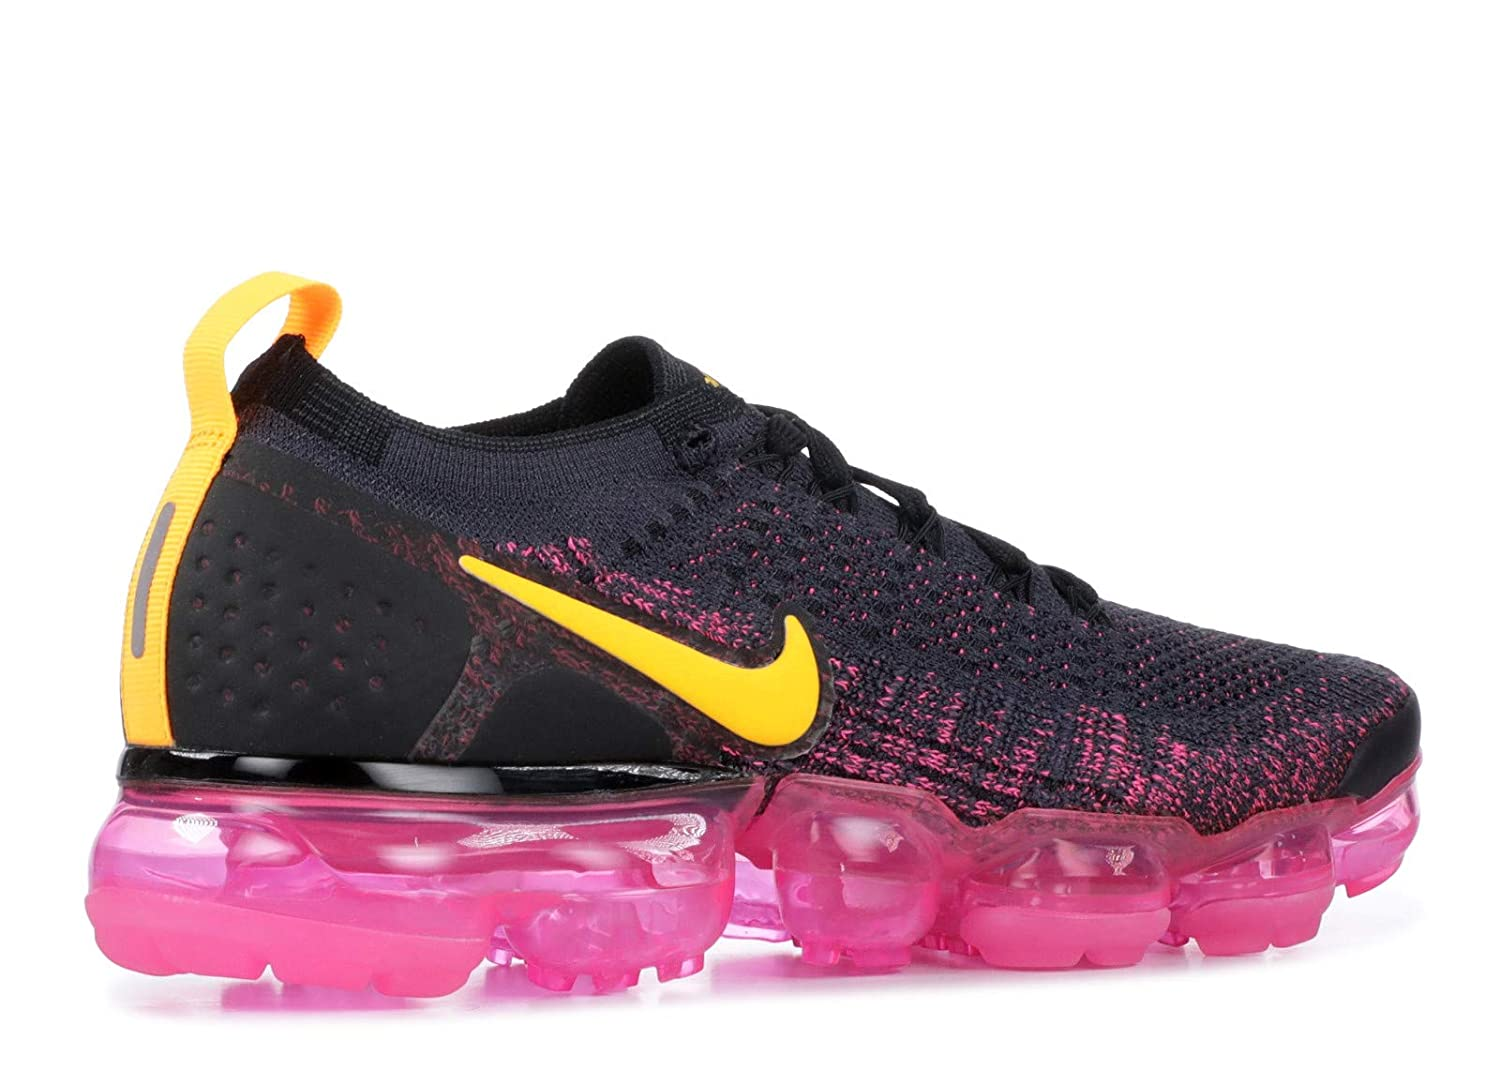 half off 4aa33 8e576 NIKE Women's Air Vapormax Flyknit 2 Running Shoes (6.5, Pink/Black)